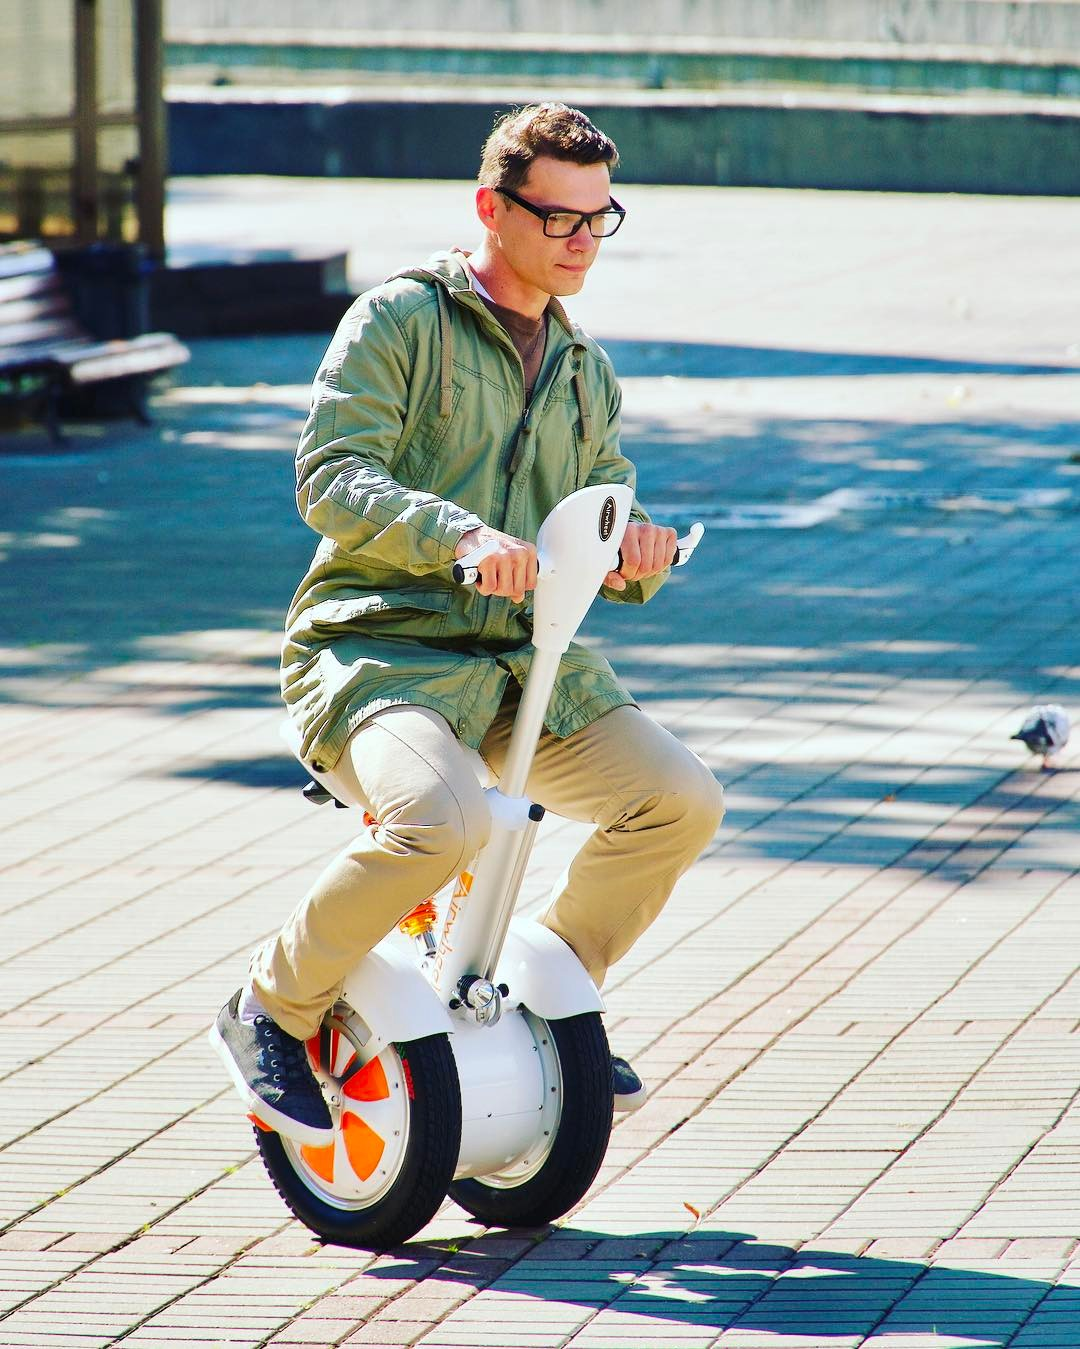 Airwheel-A3-smart-self-balancing-electric-scooter